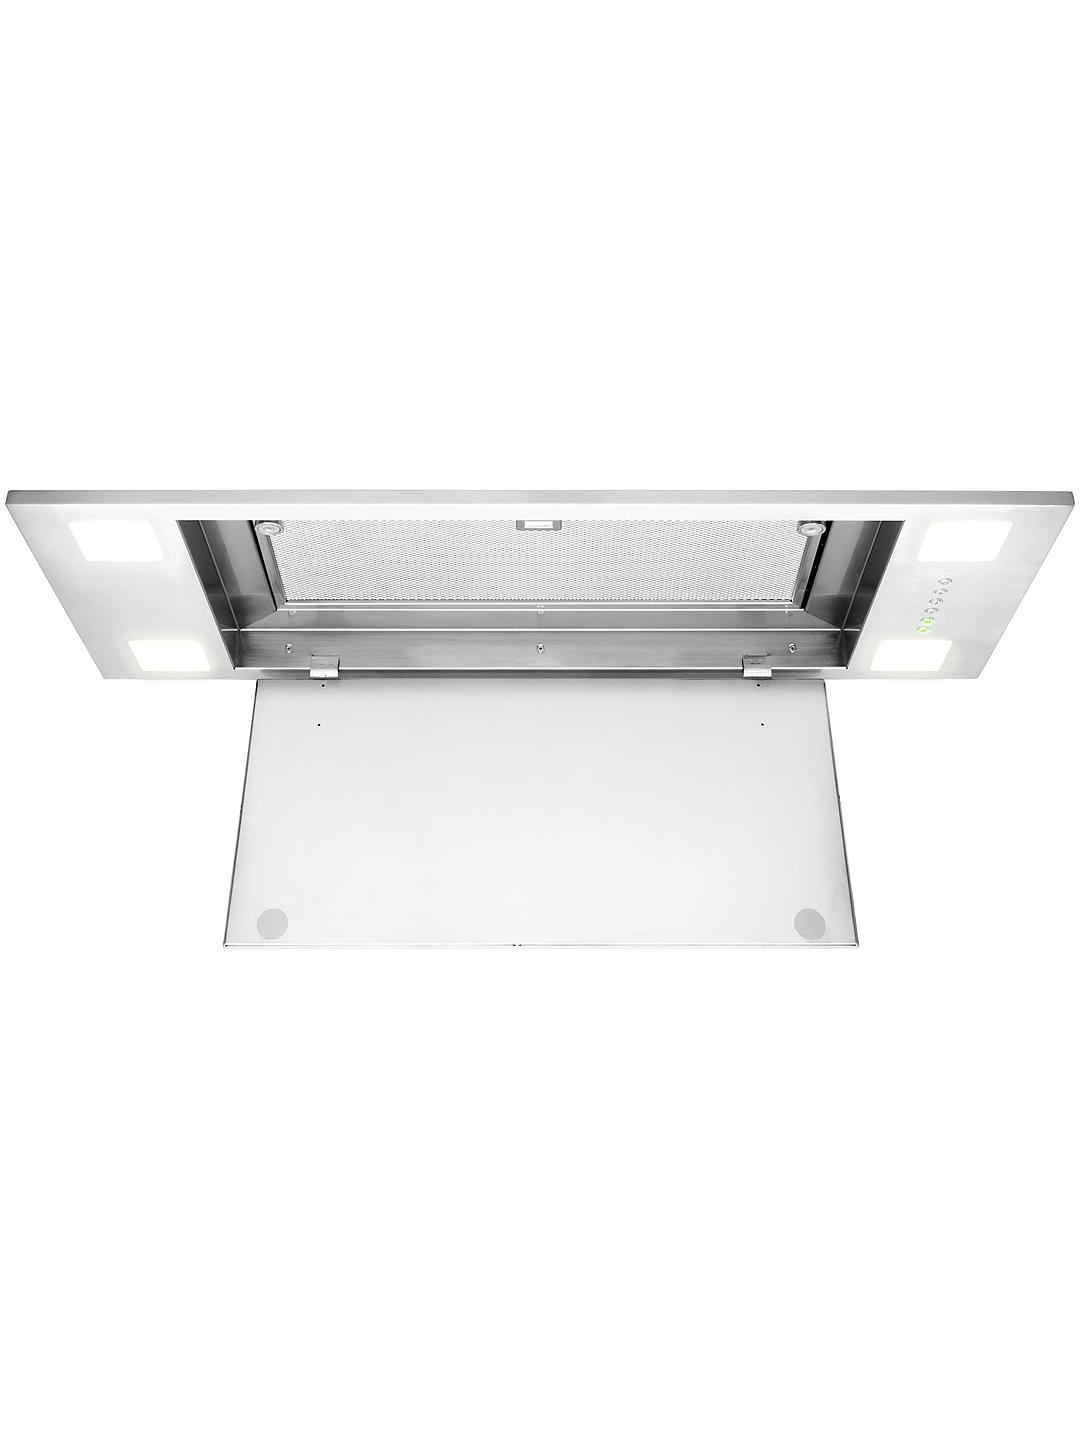 Buy John Lewis & Partners JLCHI901 Canopy Cooker Hood, Stainless Steel Online at johnlewis.com